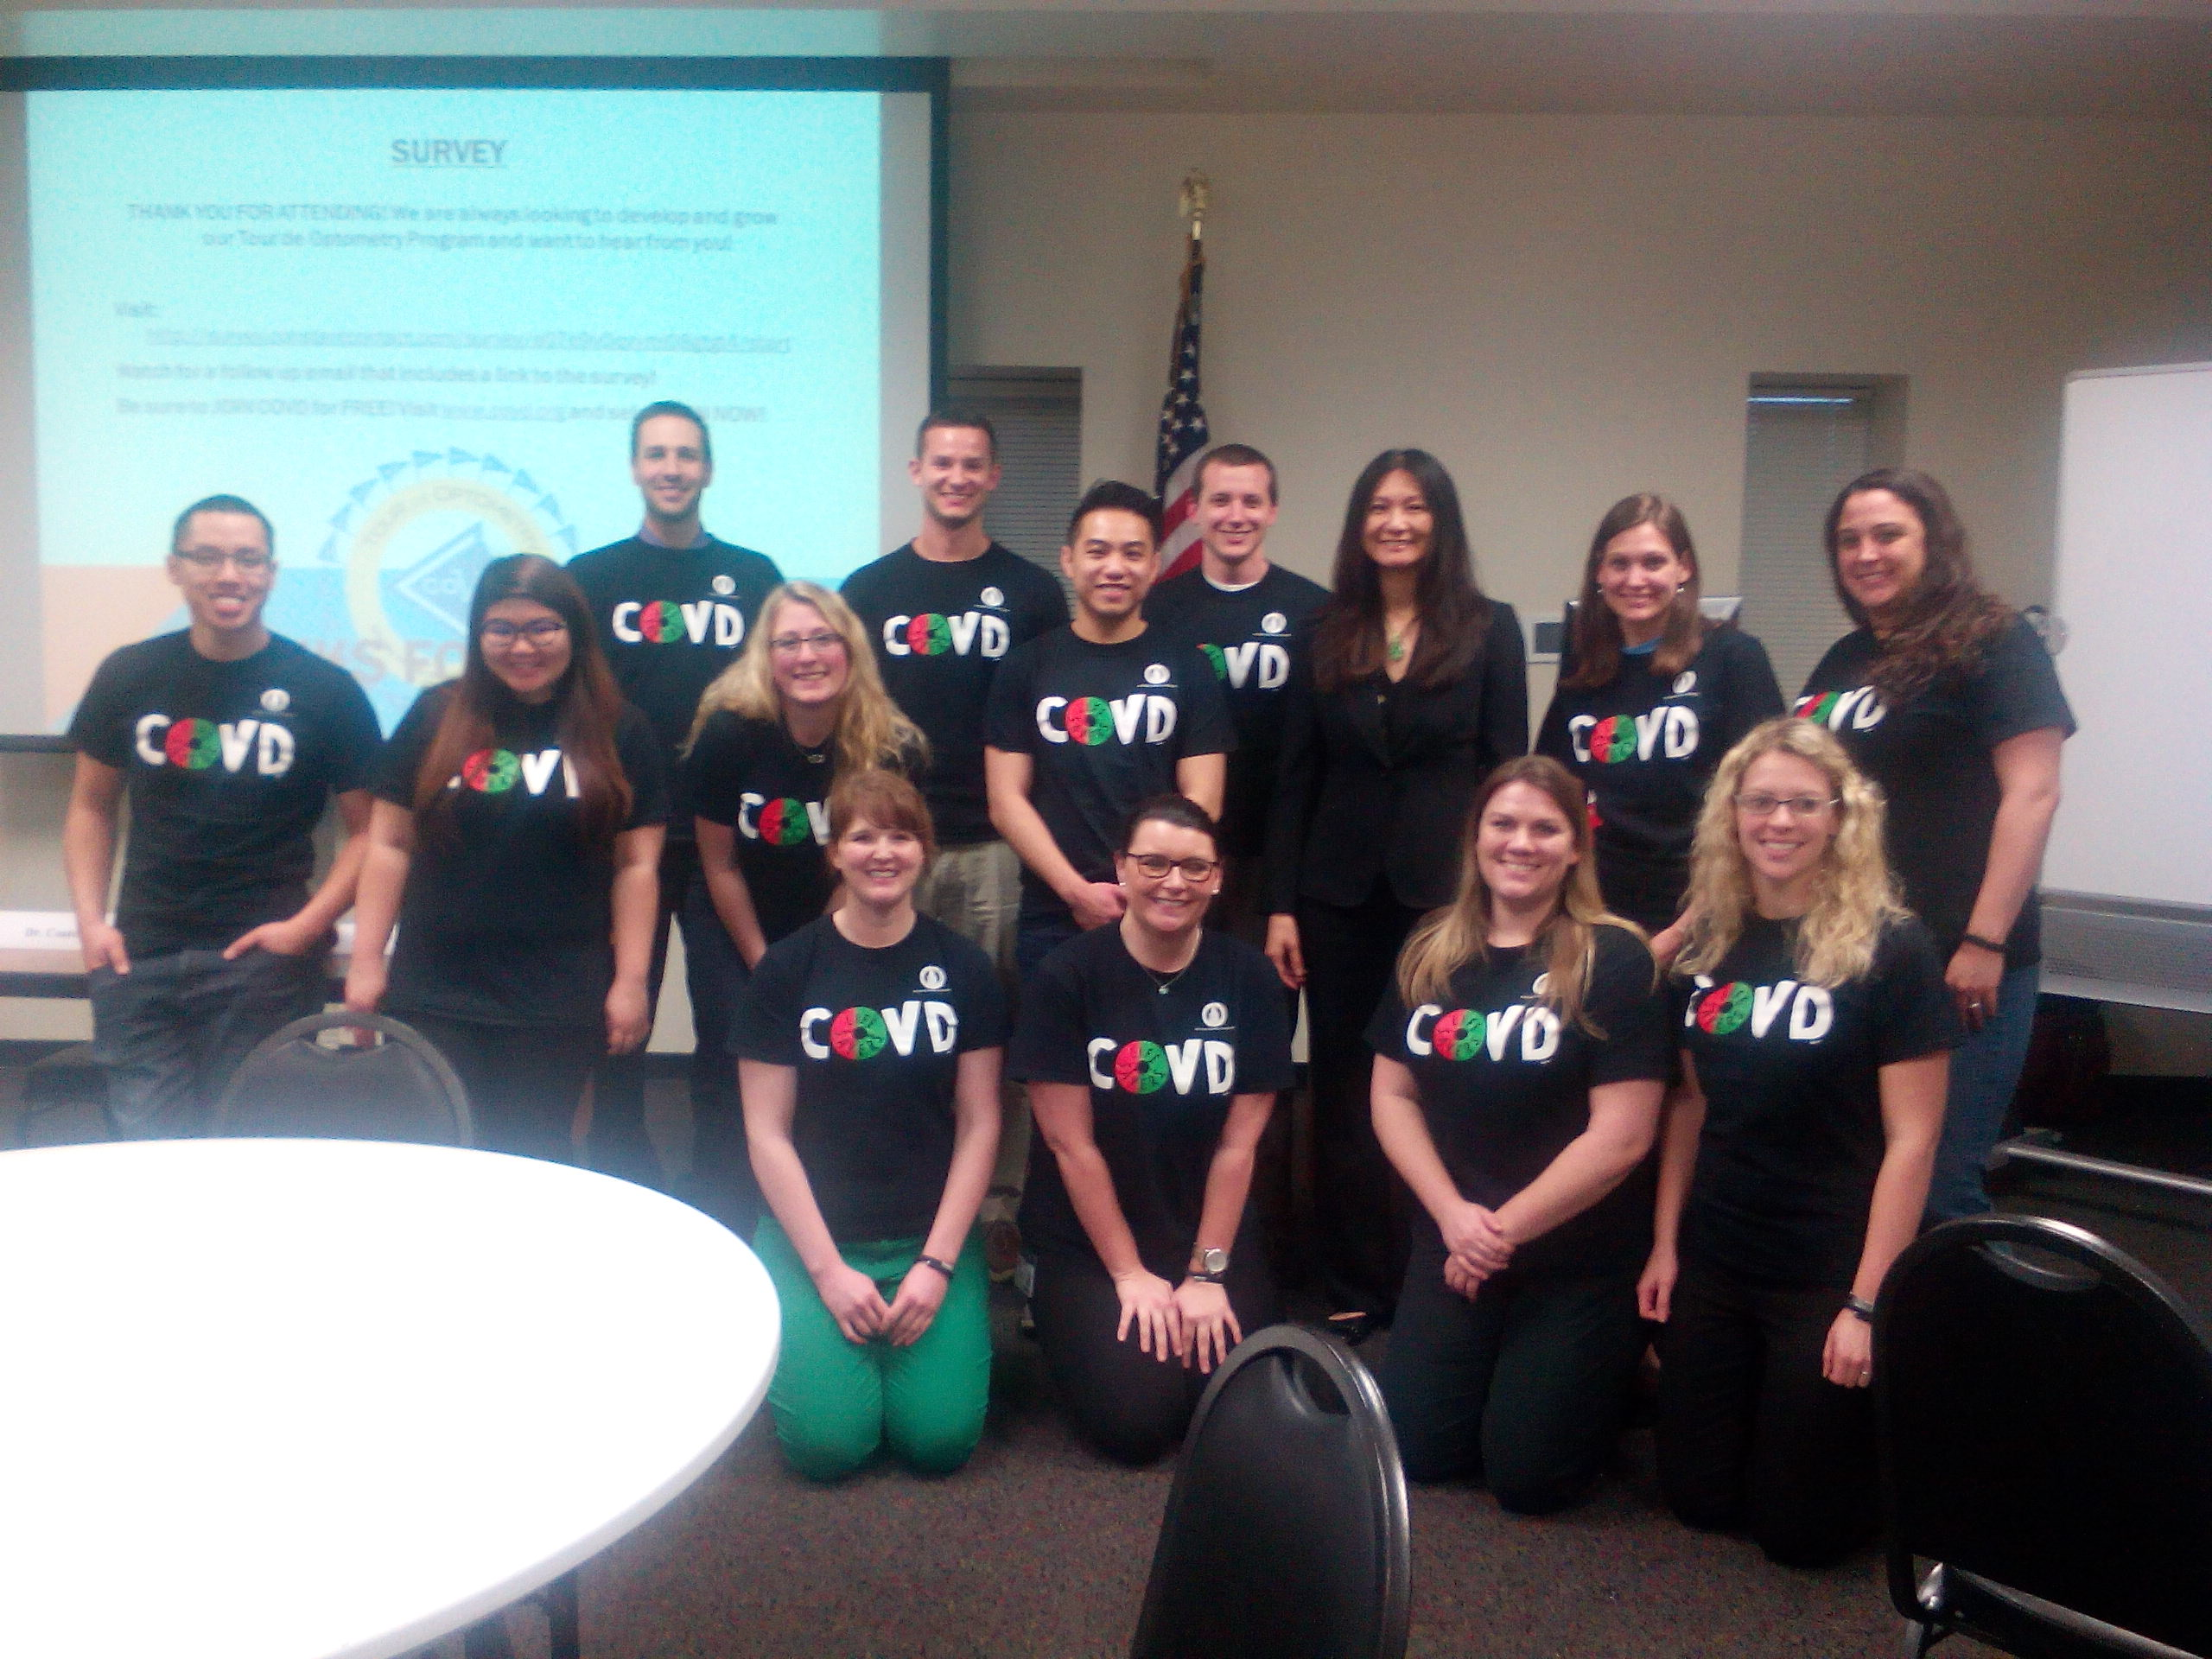 Tour de Optometry with the National COVD's President Dr. Ida Chung